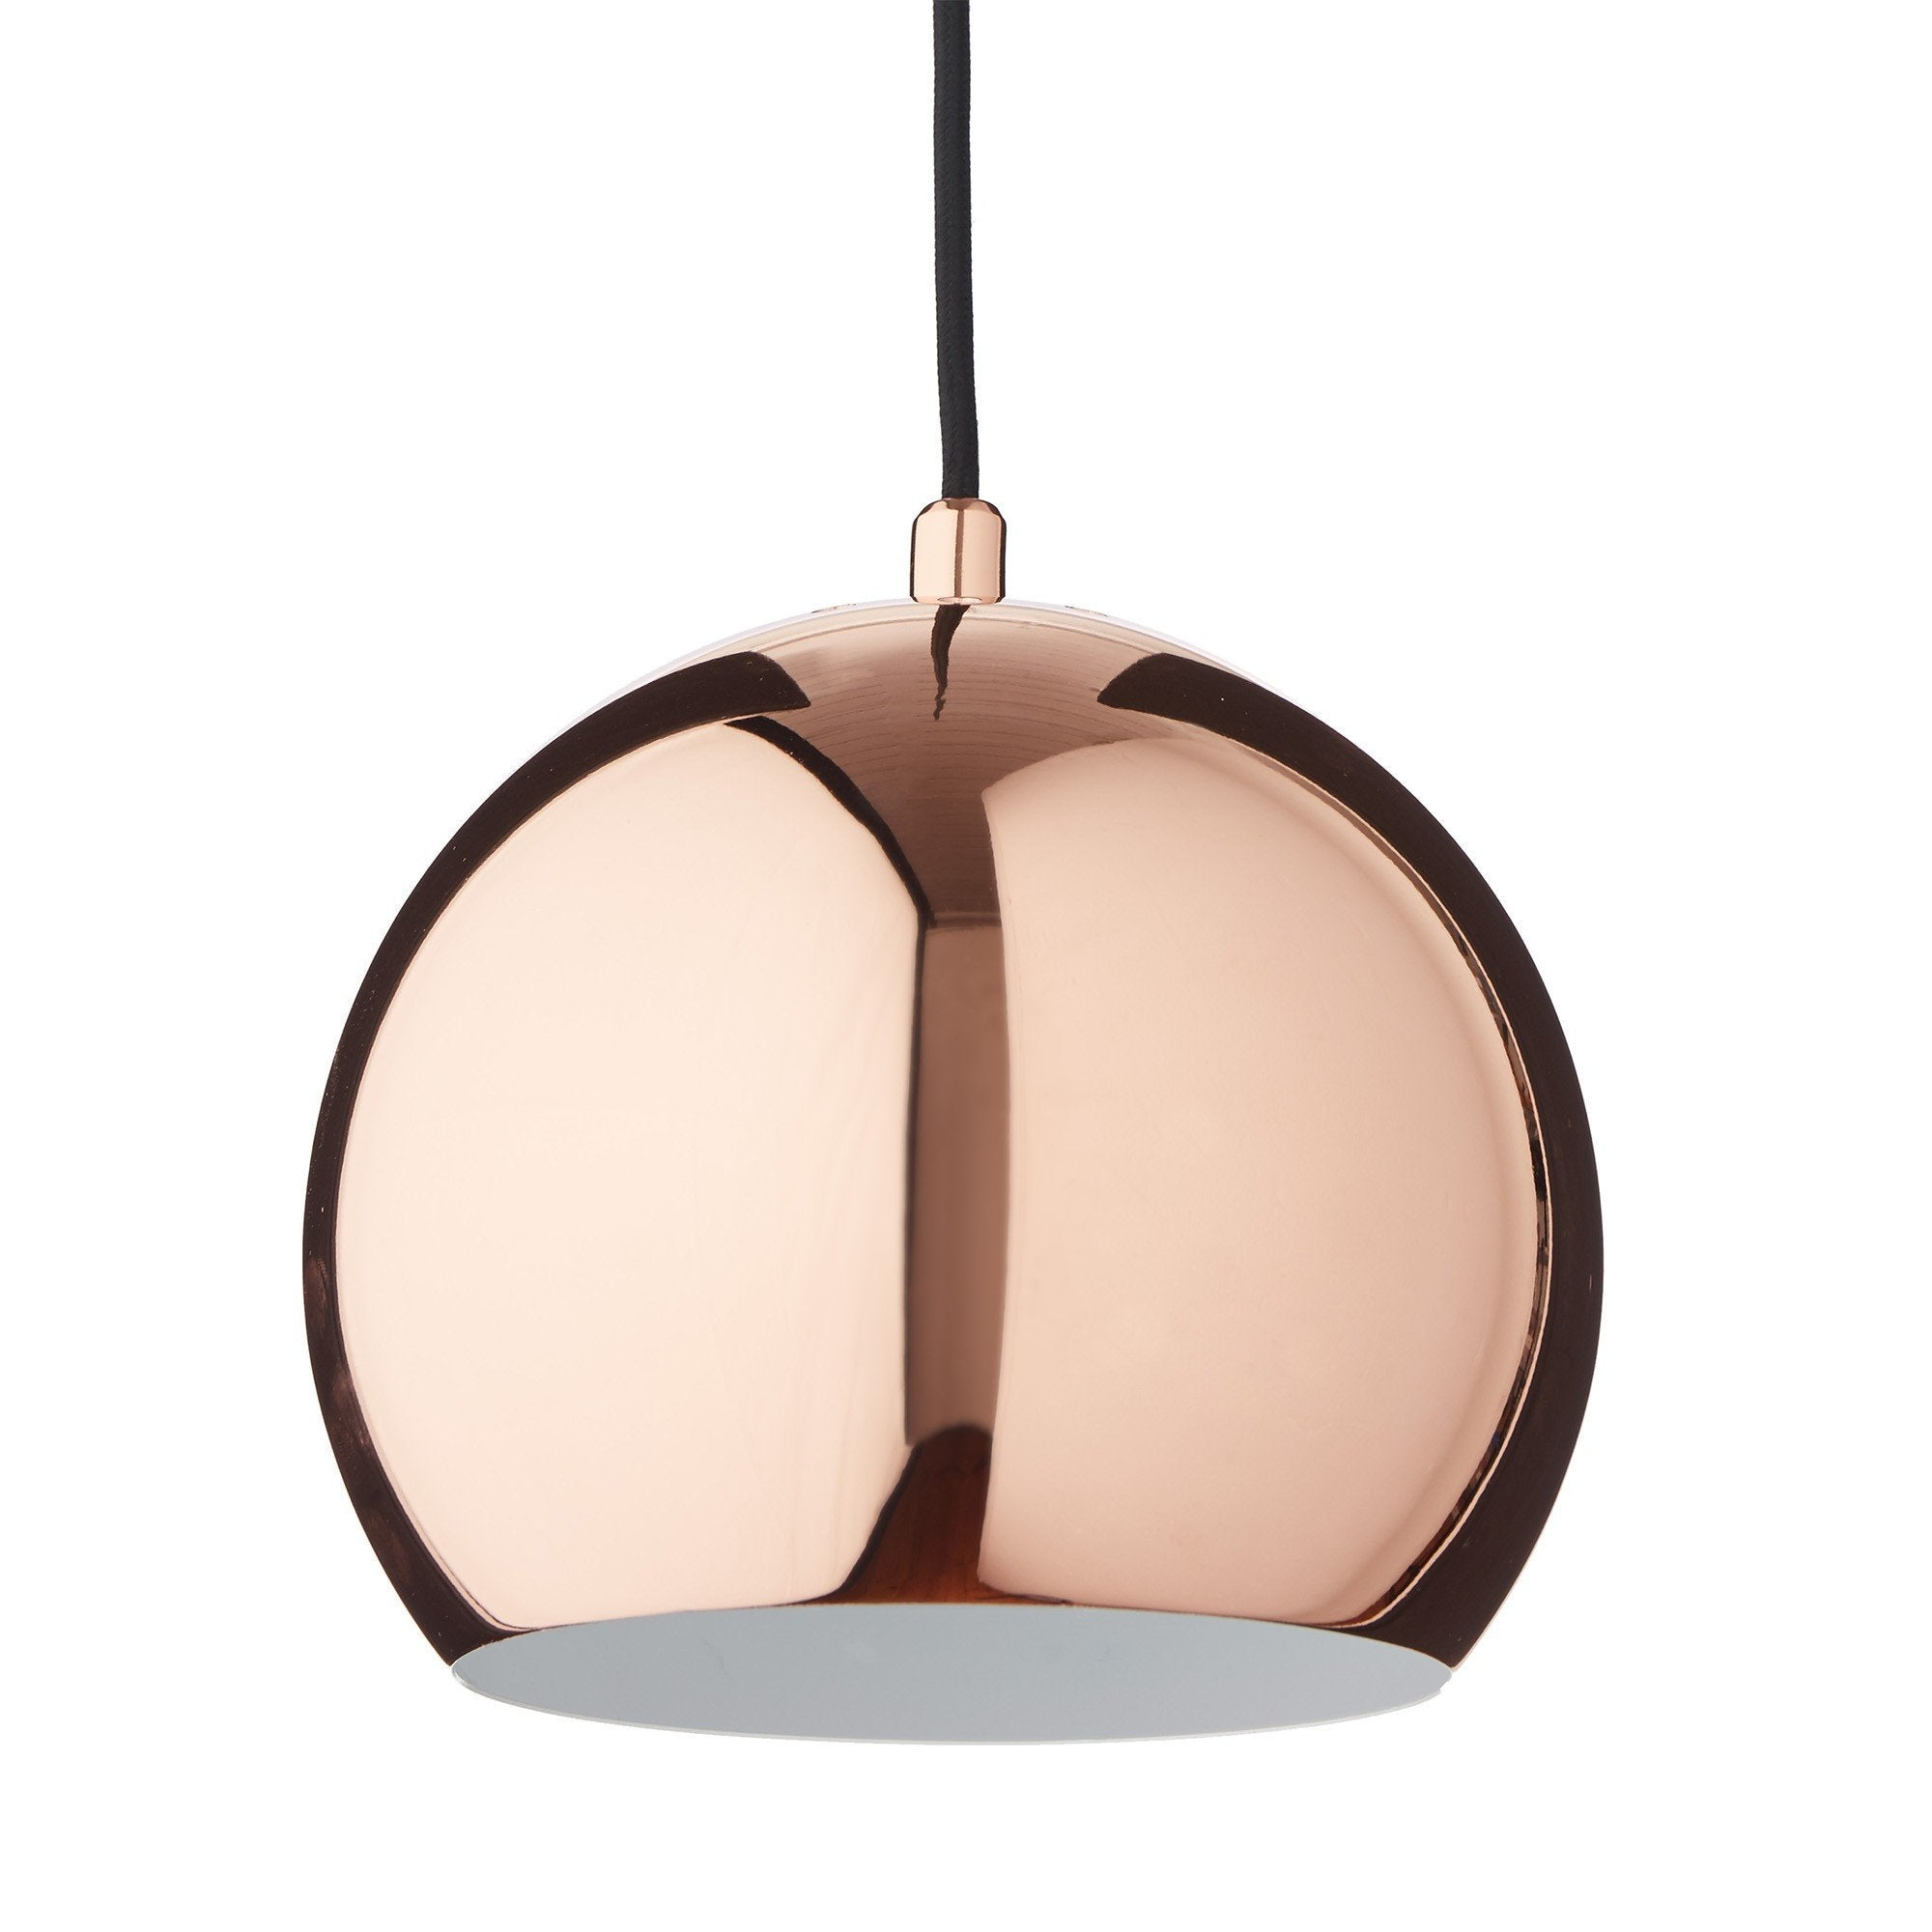 Koge pendant lamp, copper & black, 100% stainless steel